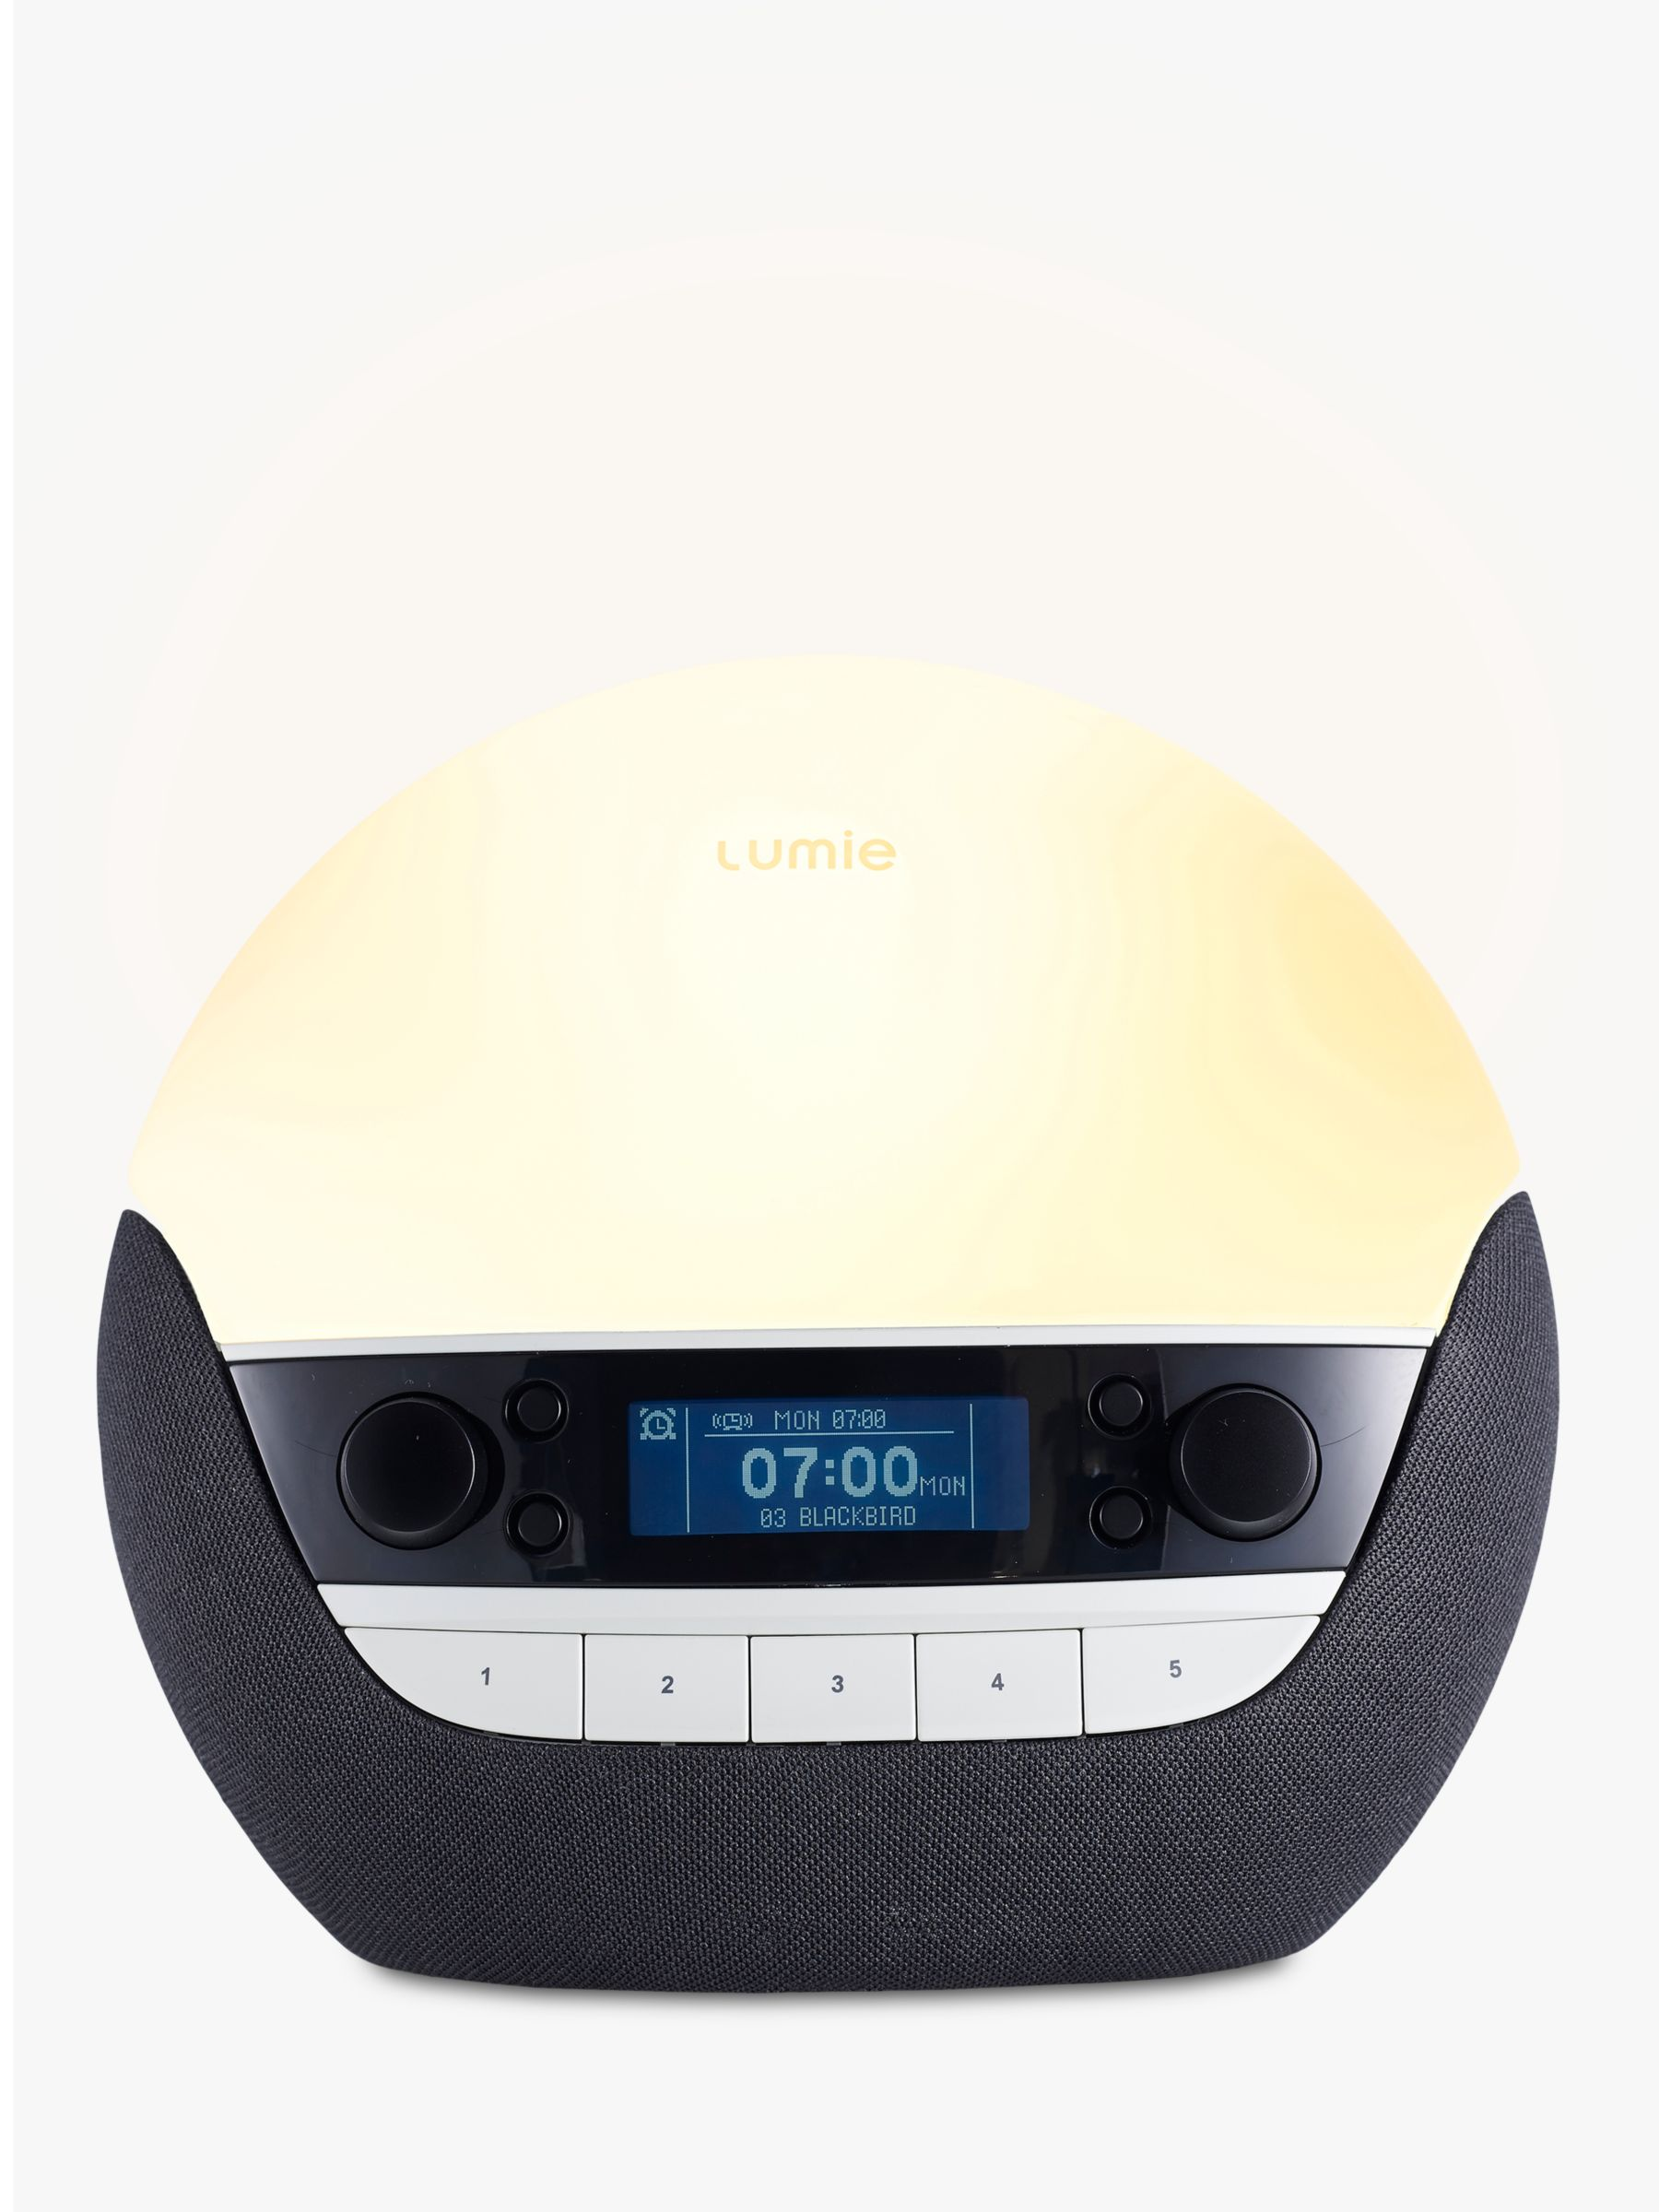 Lumie Lumie Bodyclock Luxe 700 Wake up to Daylight SAD Light, White